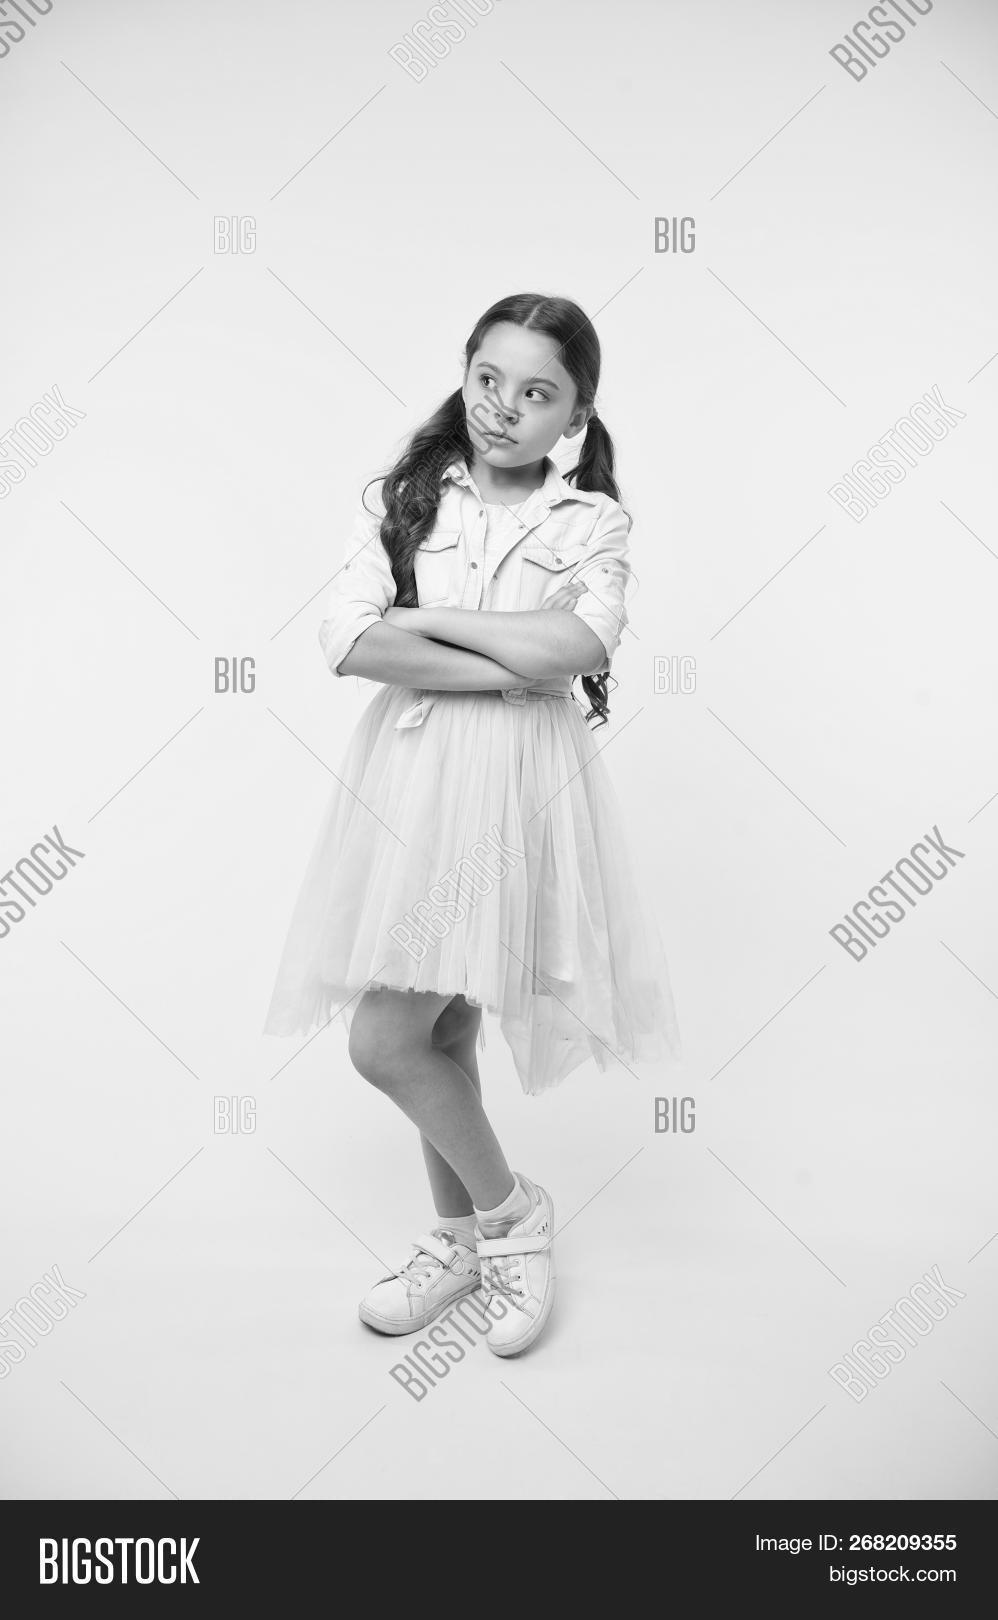 00a2cadf9859f Child keep arms crossed on yellow background. Little girl pose with serious  look in fashion wear. She is so cute. Her perfect style. Innocent beauty.